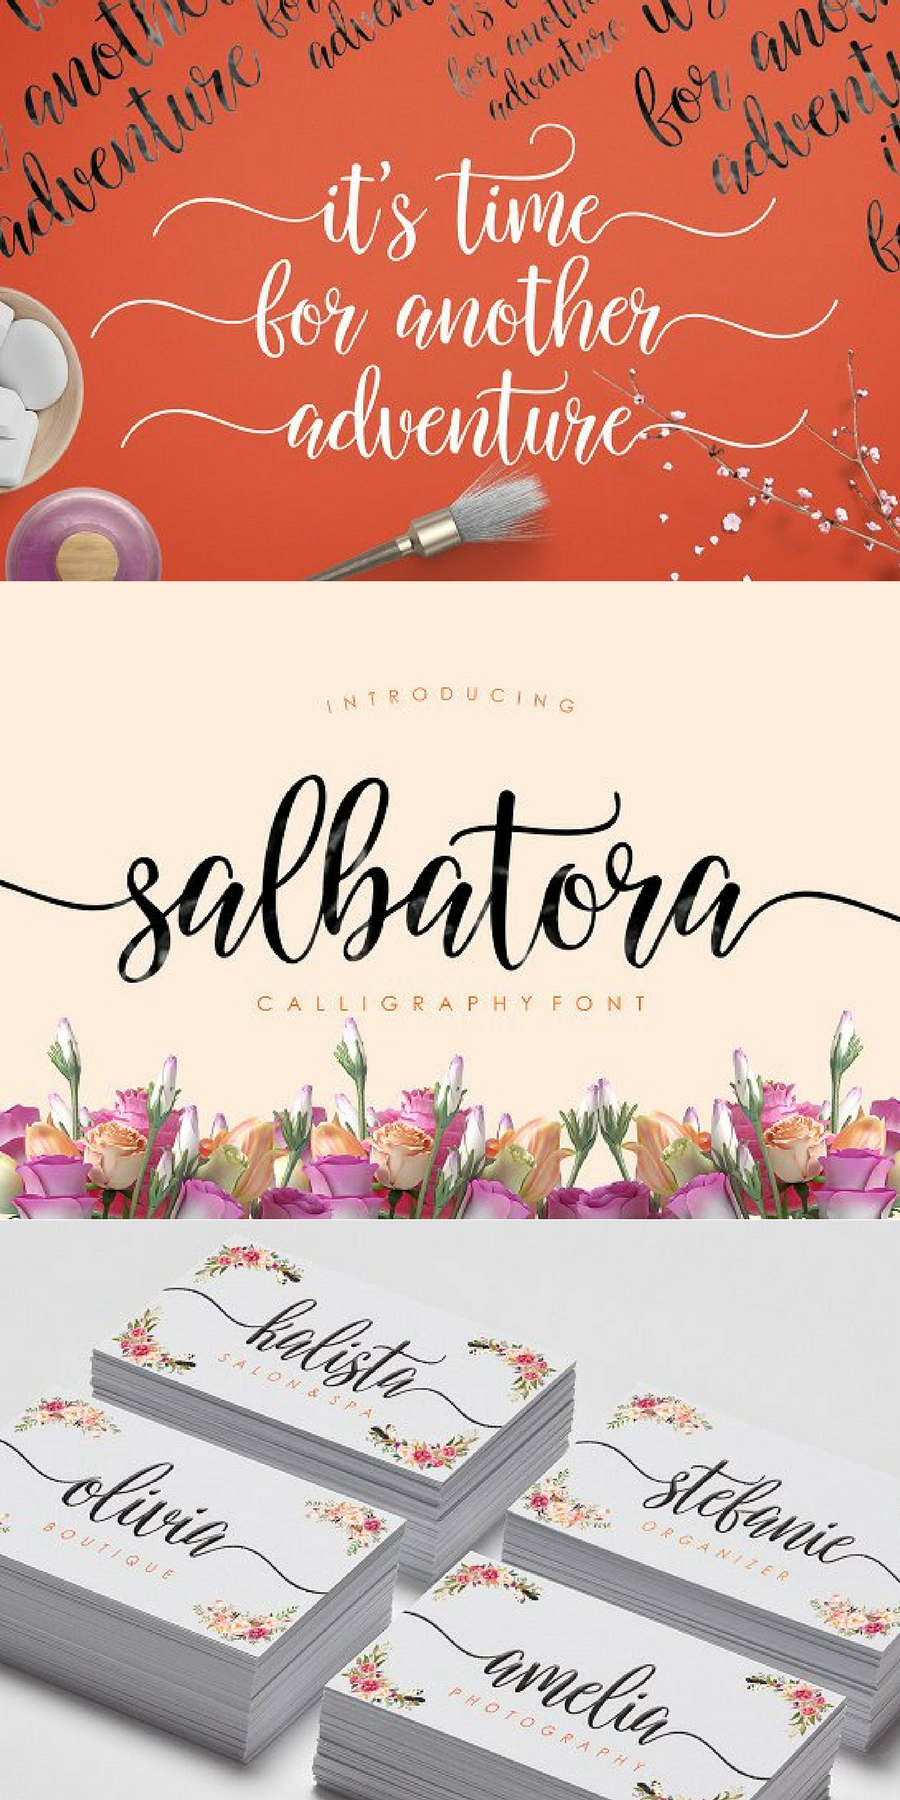 cursive fonts for wedding cards%0A    Free Calligraphy Script Fonts for Wedding Invitations   Calligraphy fonts   Modern calligraphy and Calligraphy